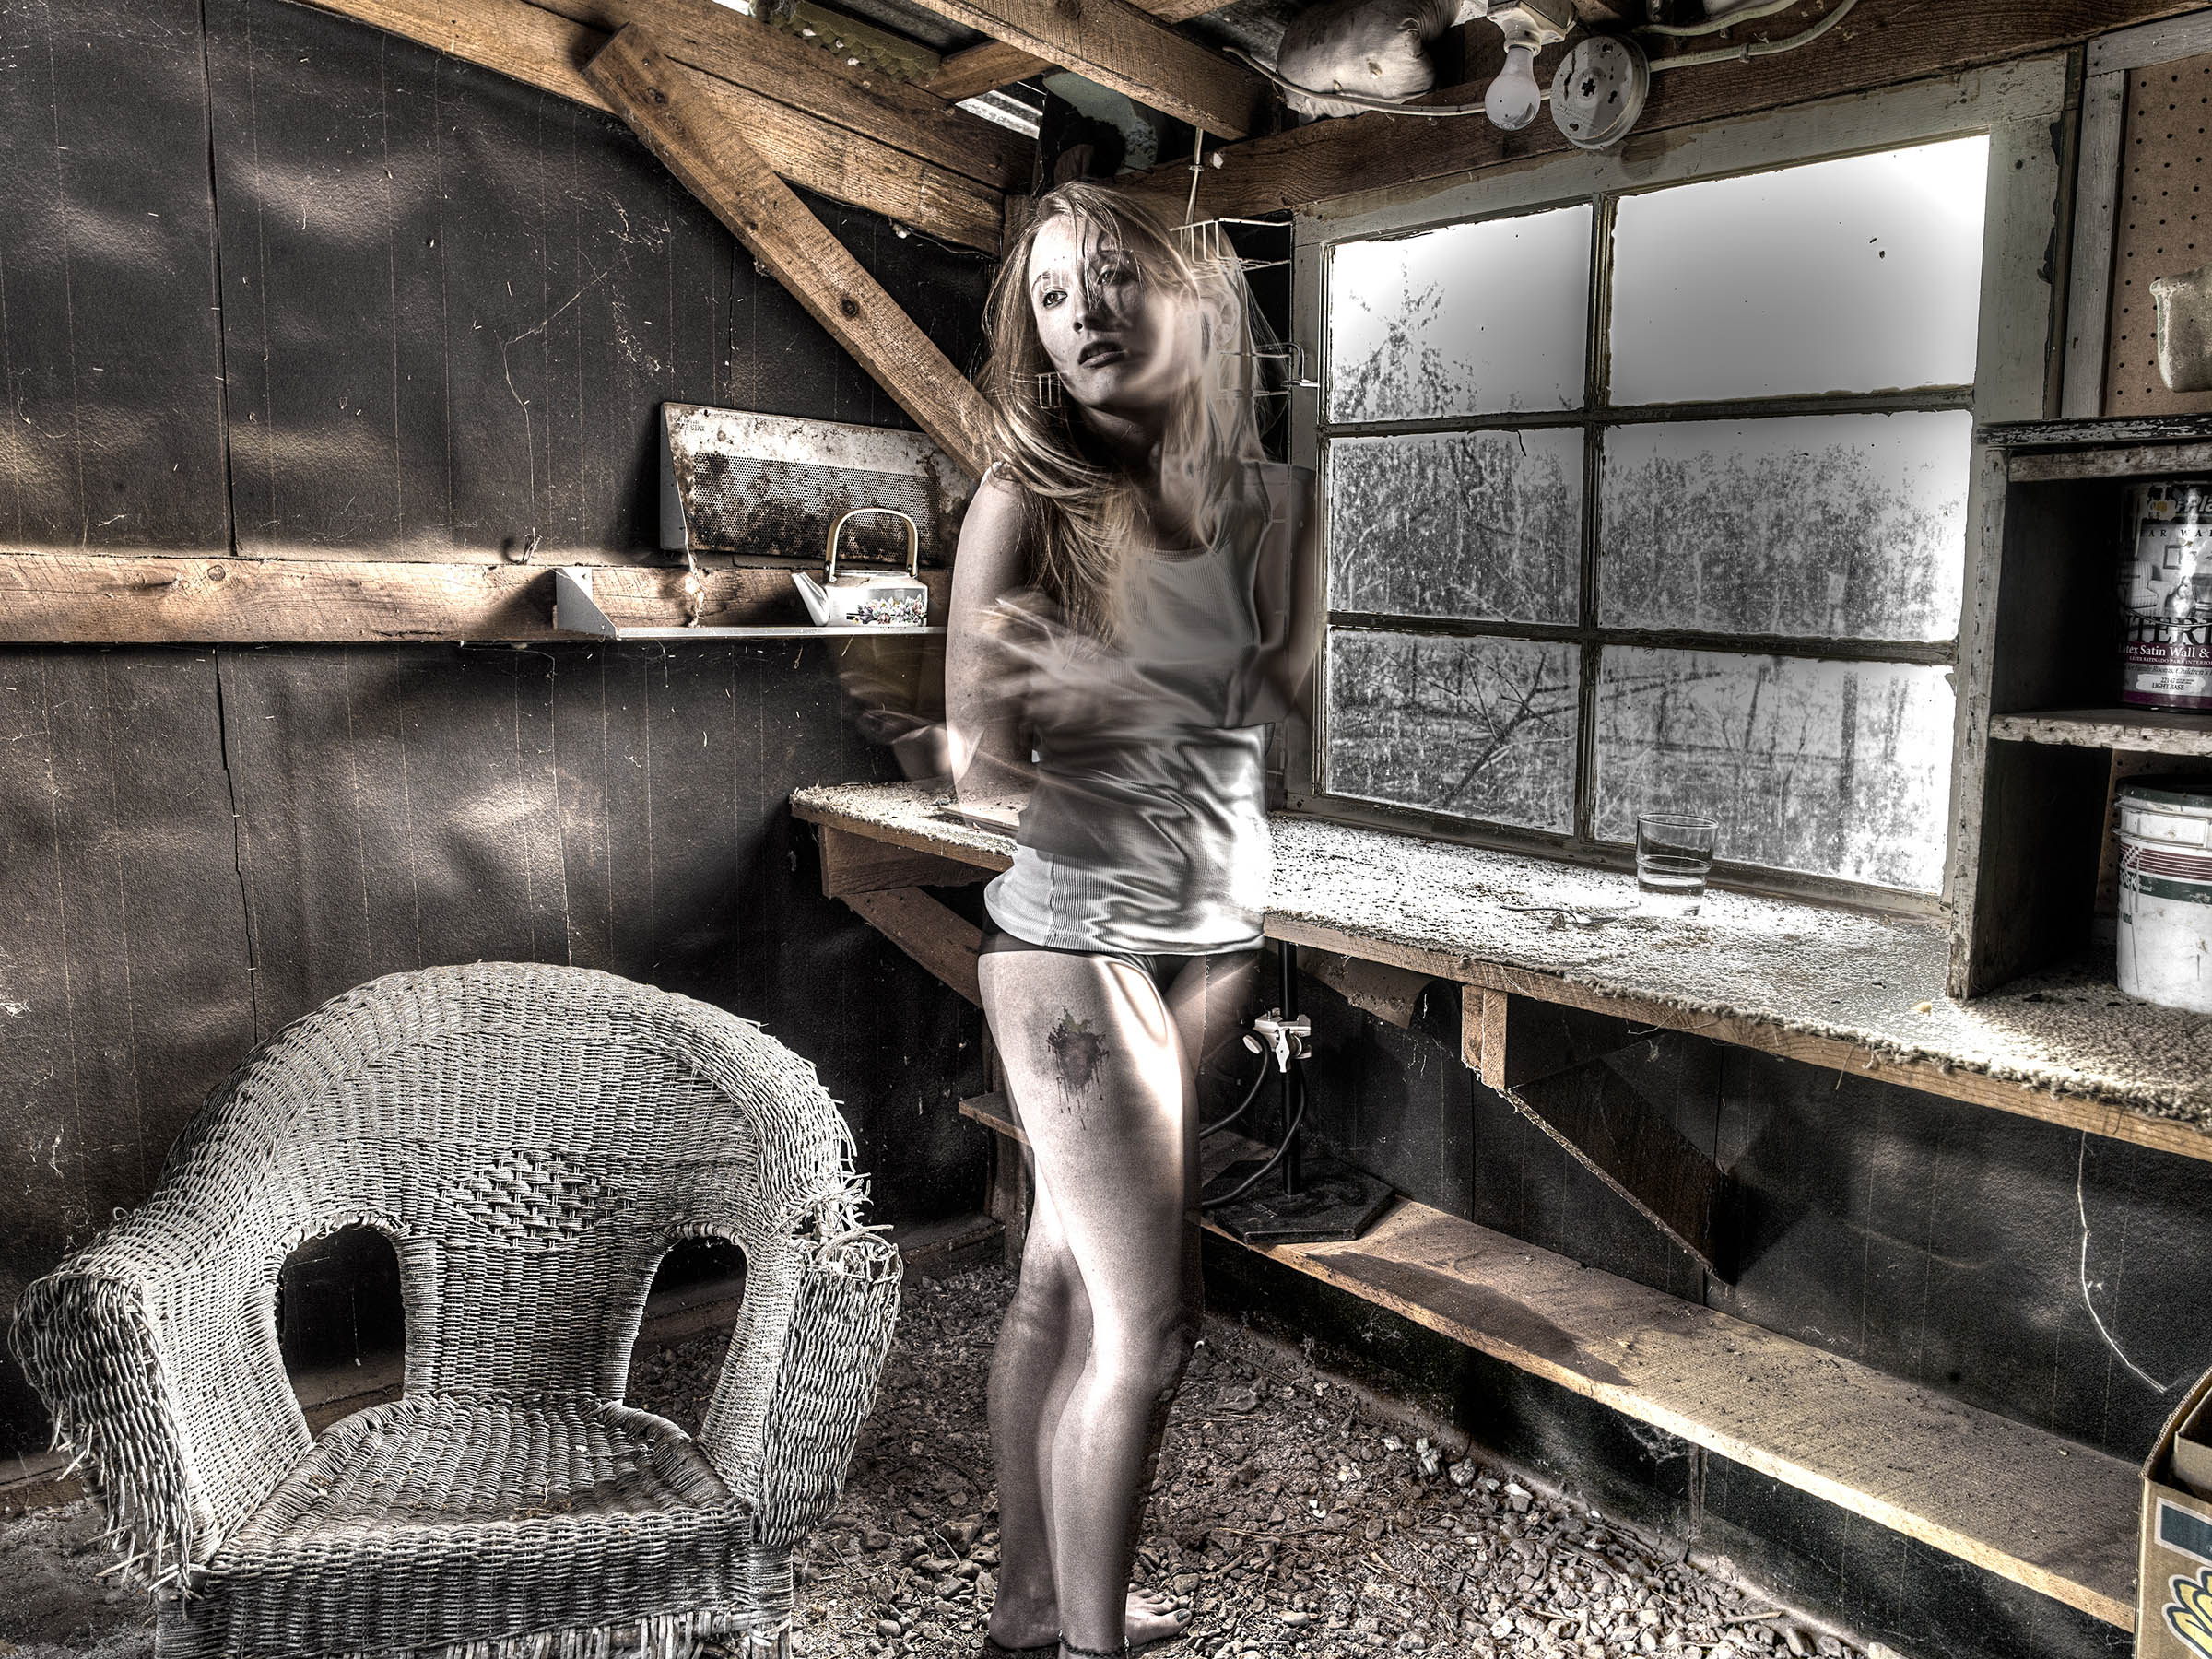 Girl in Shed, Photography by Fine art Photographer NYC Wick Beavers LA Barn San Lorenzo Wick Beavers Photographer